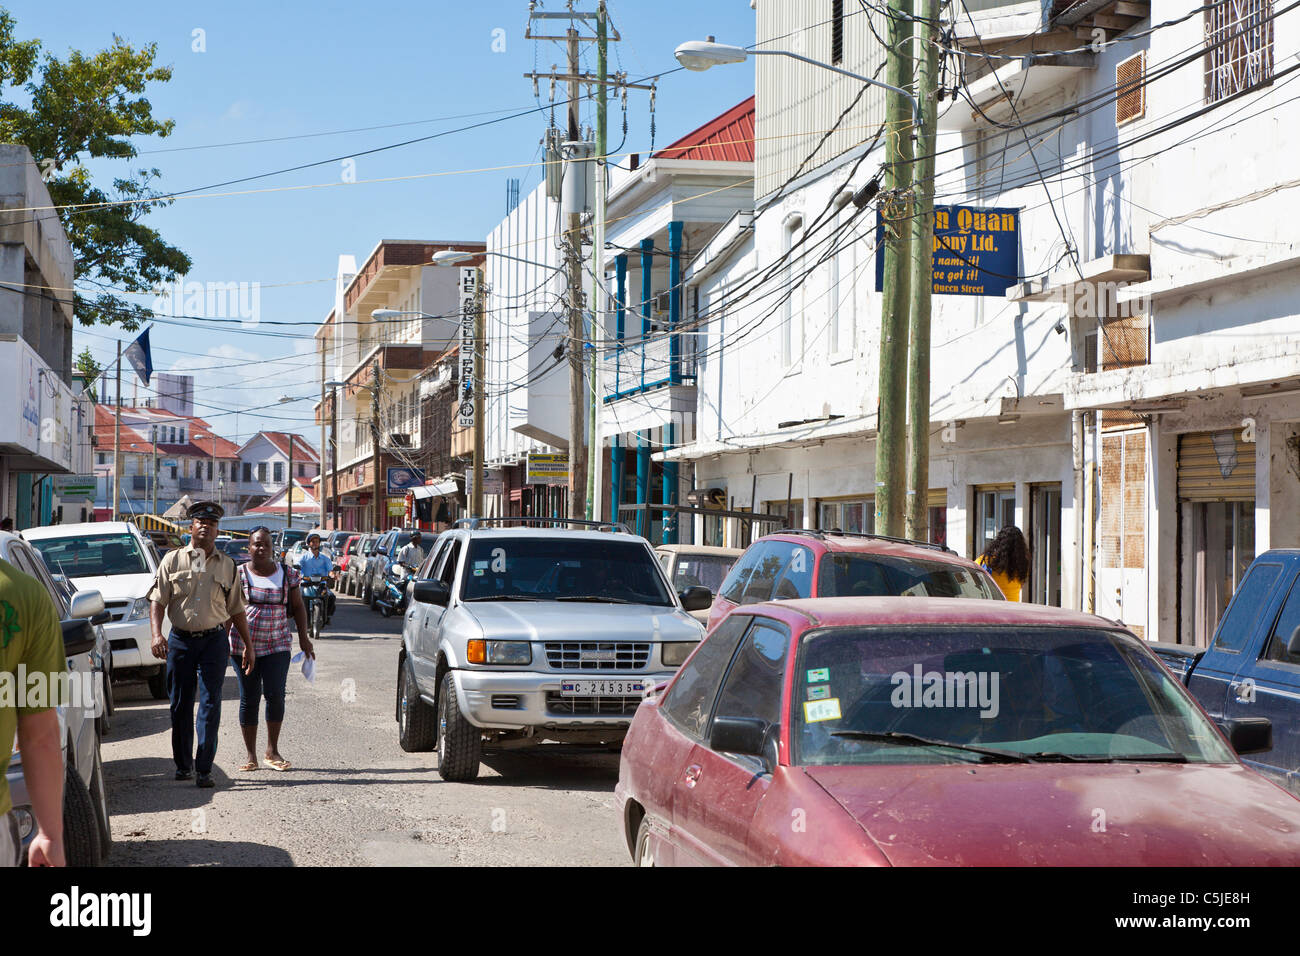 Policeman walking with woman on congested street in downtown Belize City, Belize - Stock Image